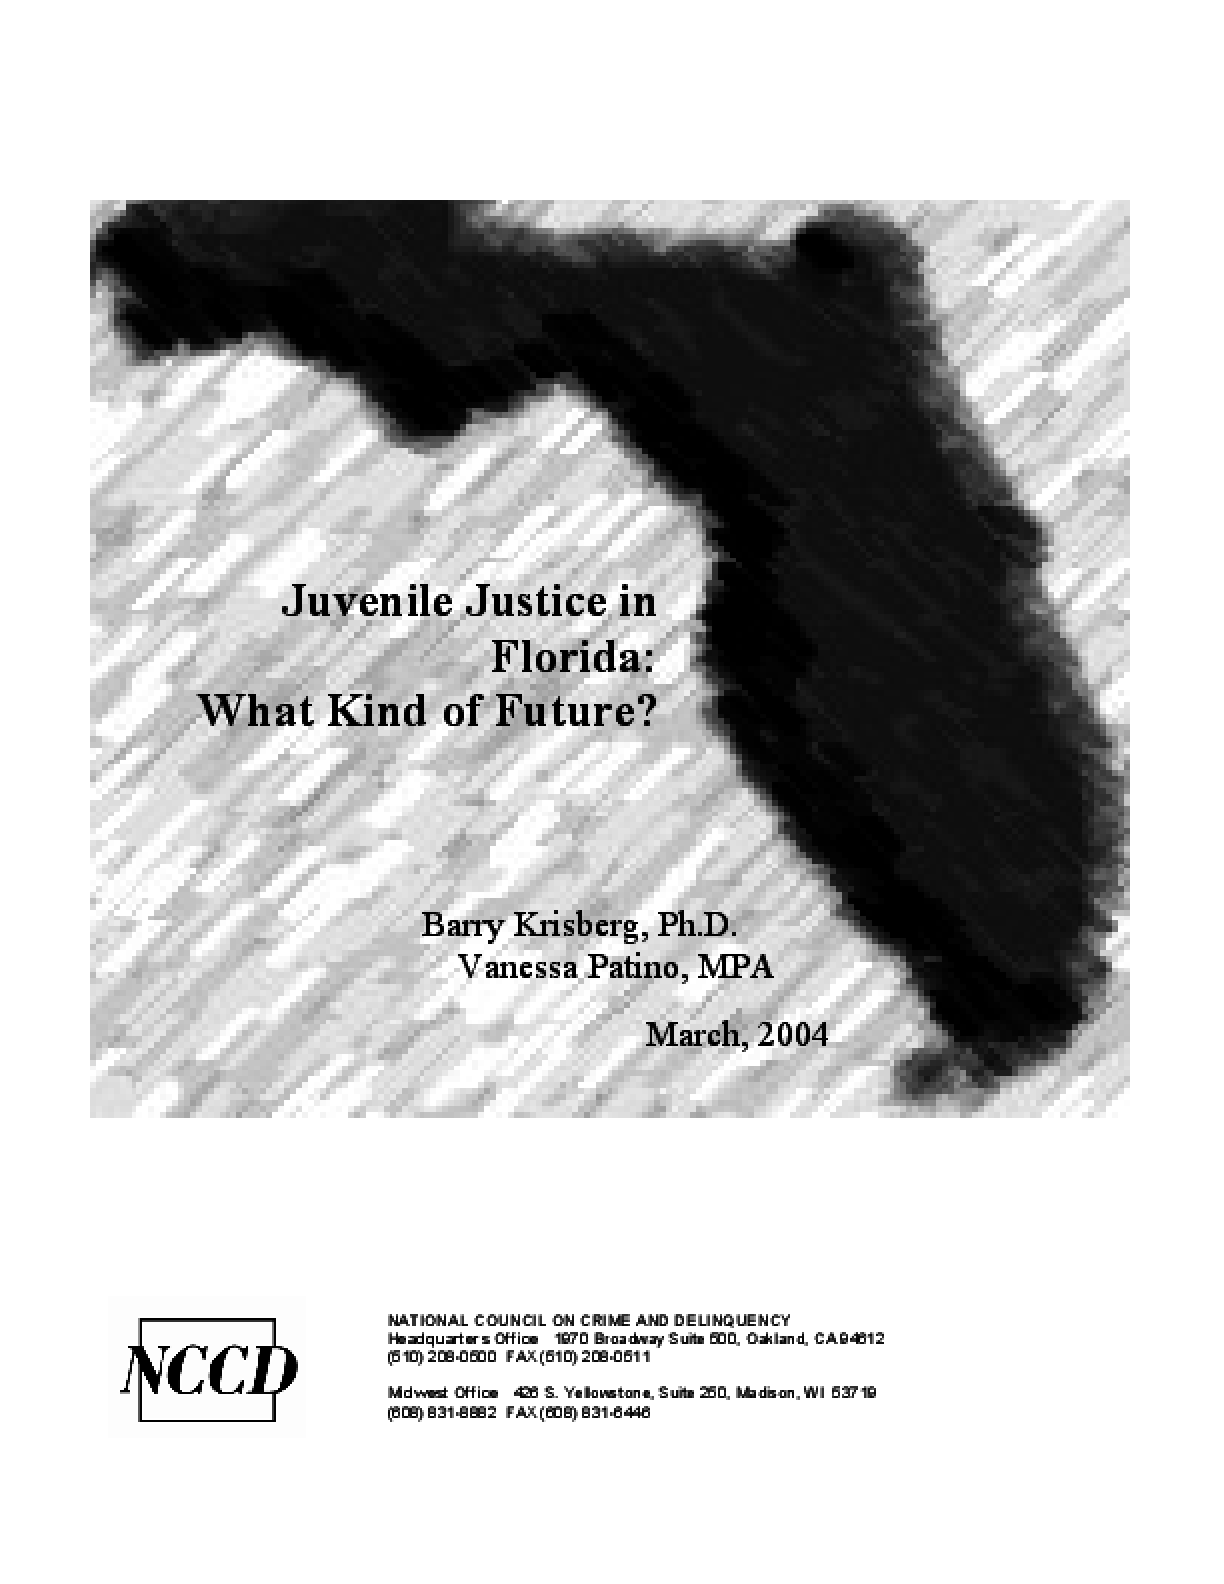 Juvenile Justice in Florida: What Kind of Future?